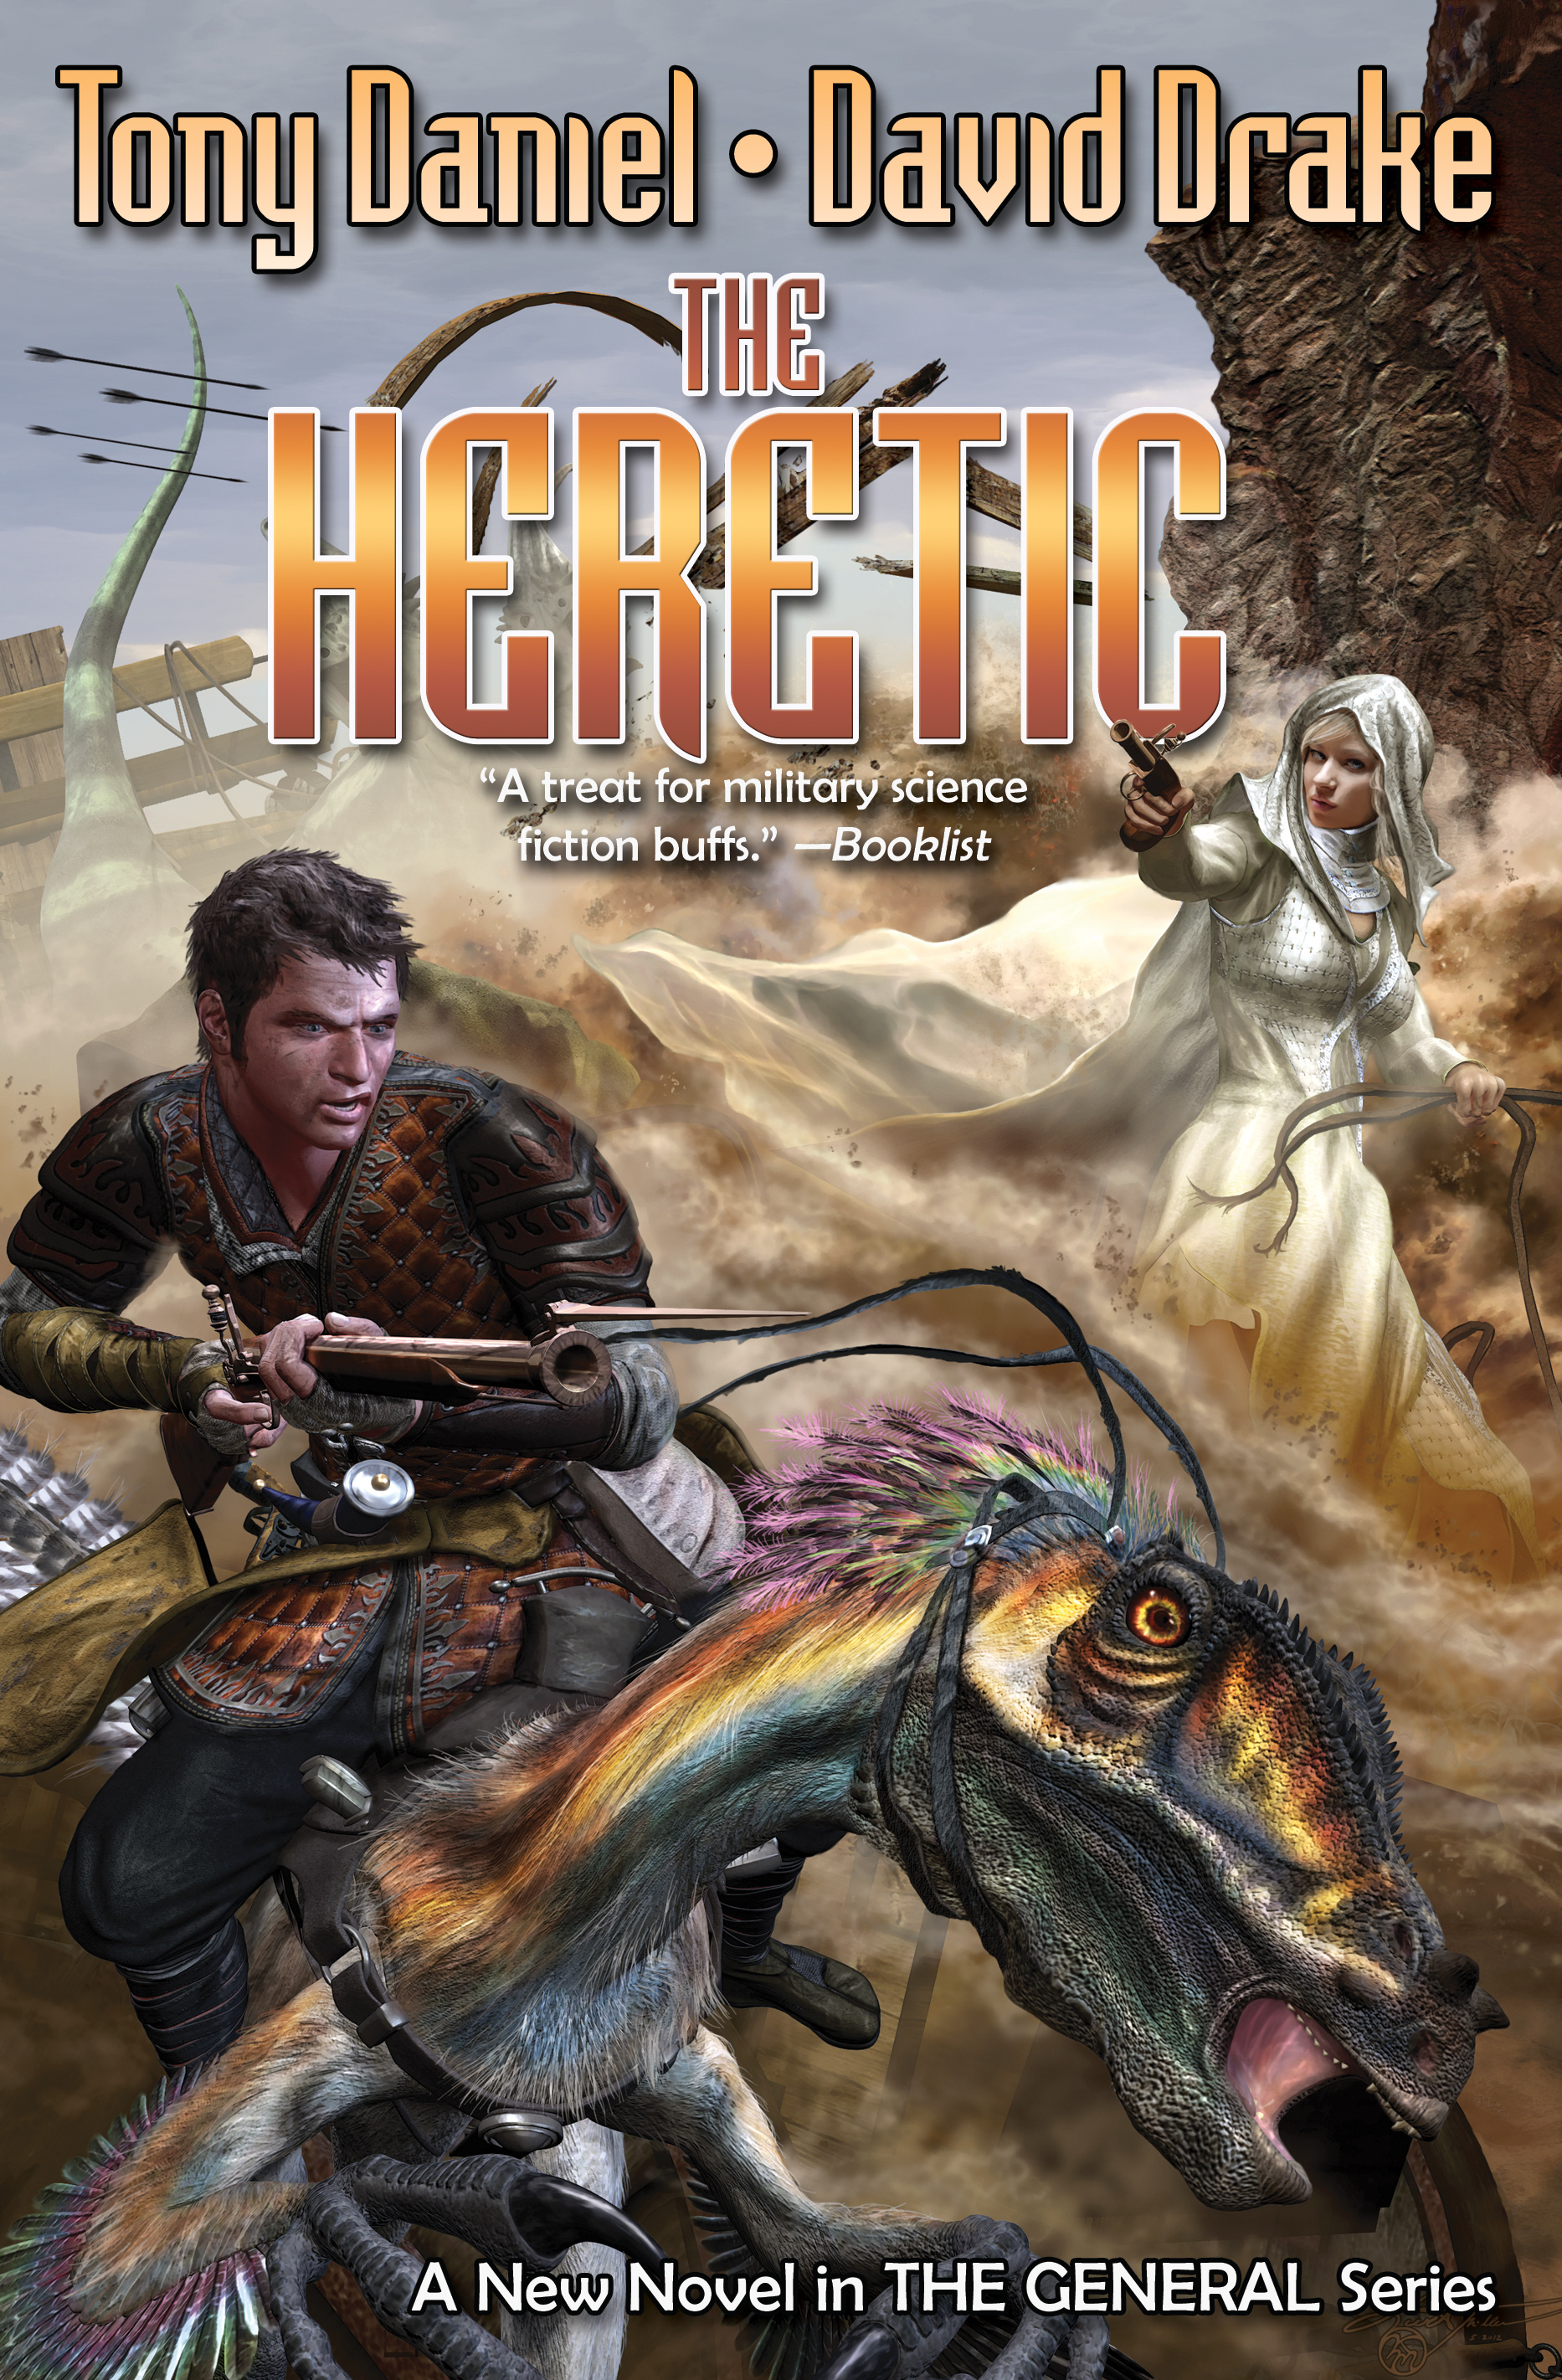 the heretic book by david drake tony daniel official publisher